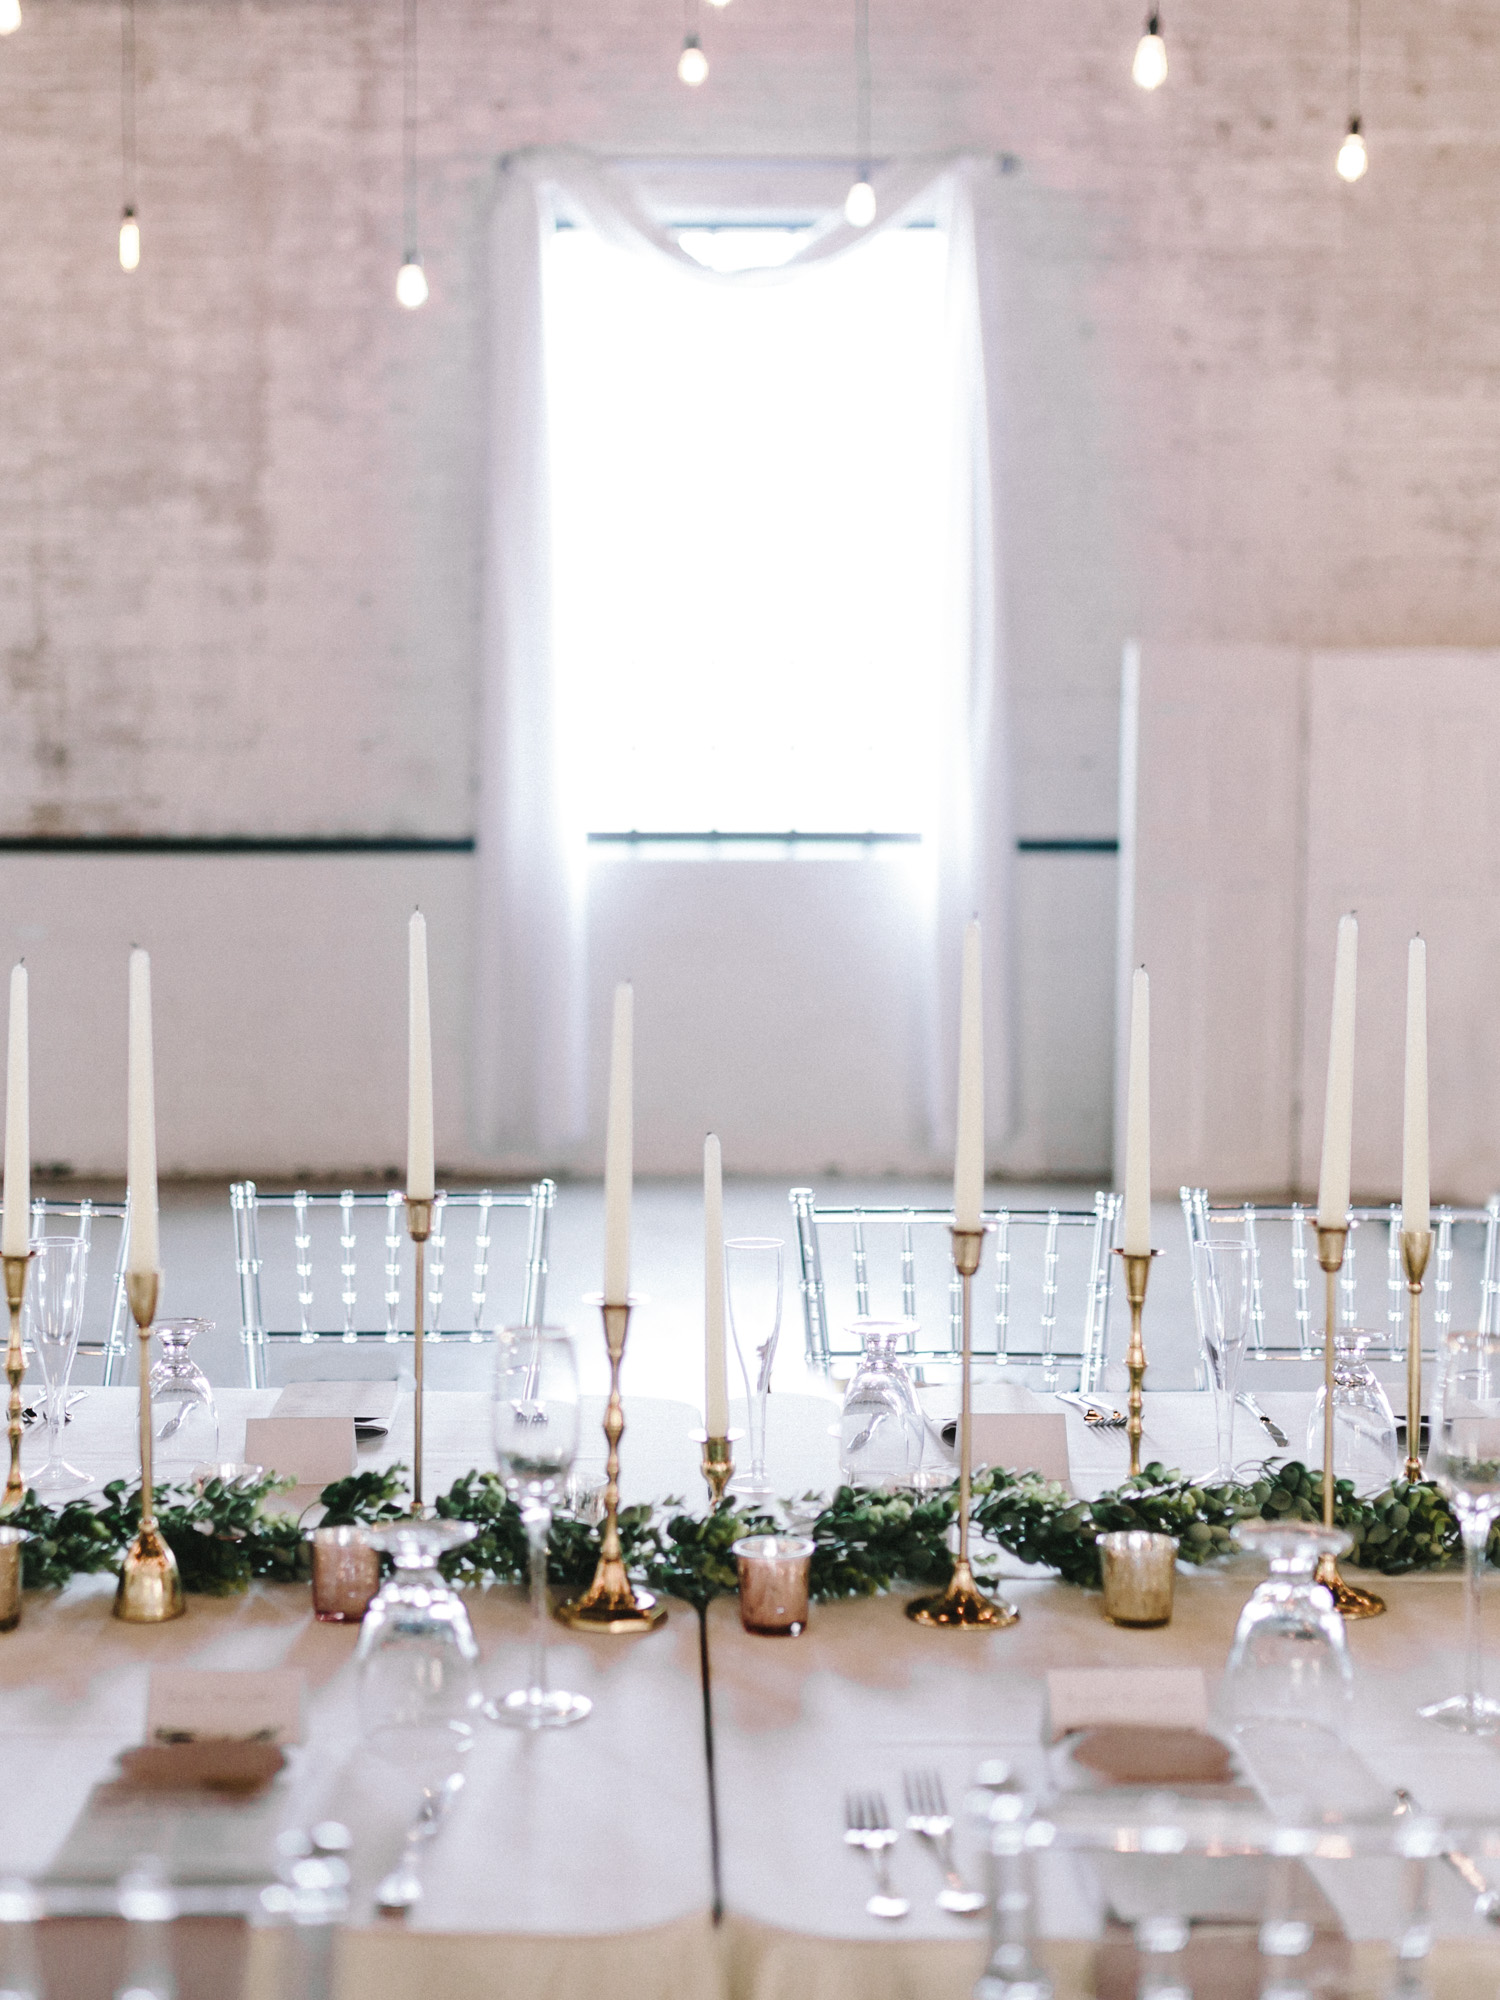 Romantic and ethereal blush, white, and gold reception details with a greenery runner and pillar candles at The Brick in South Bend by wedding photographer Christina Harrison